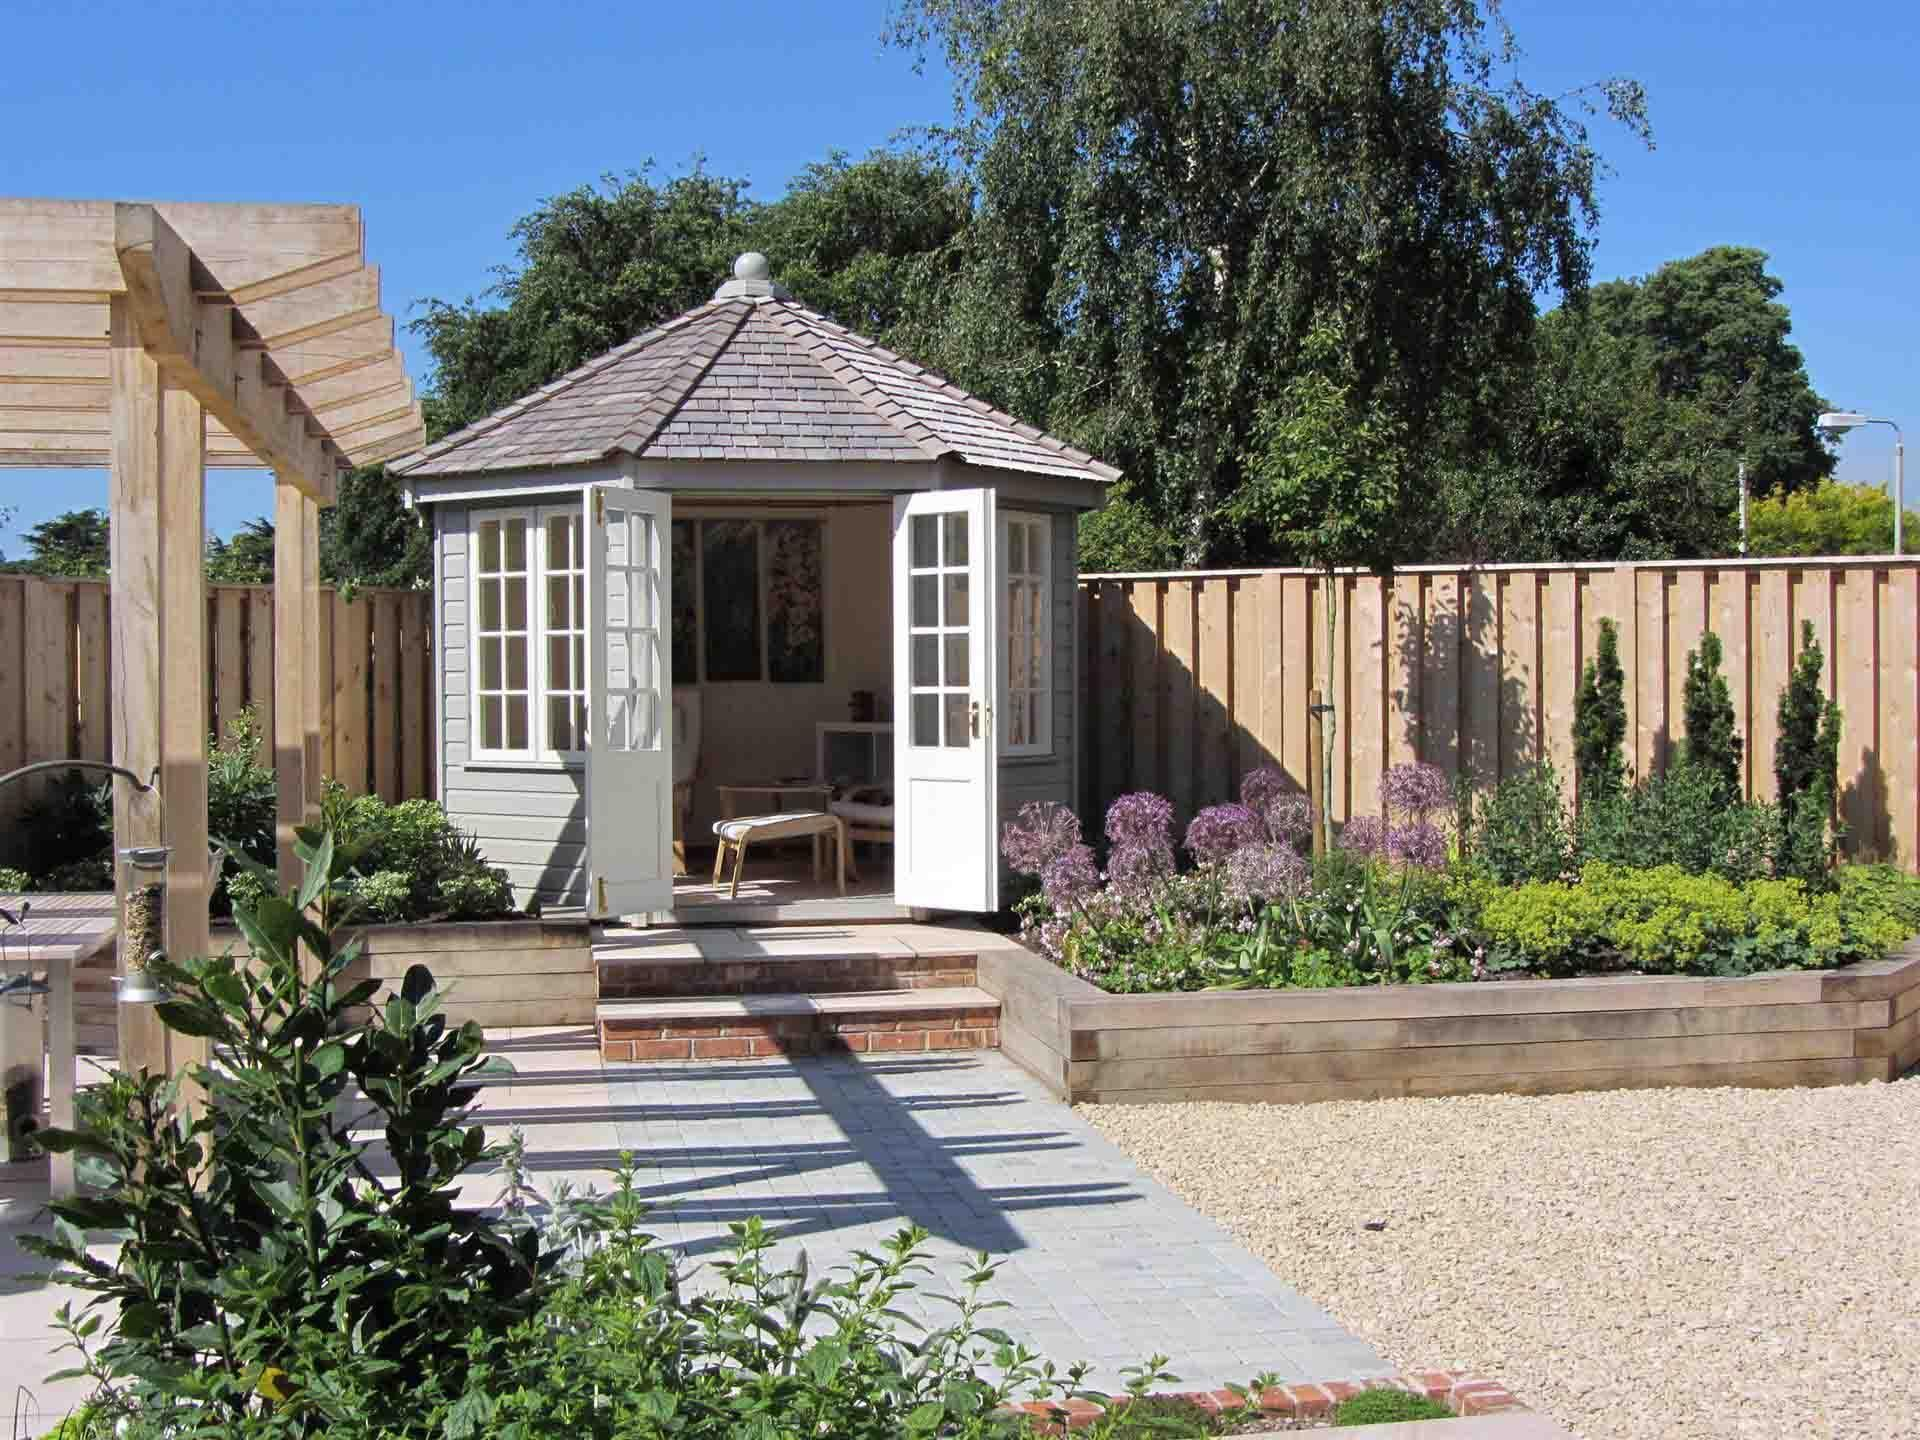 view to summerhouse in gloucestershire garden by chameleon design